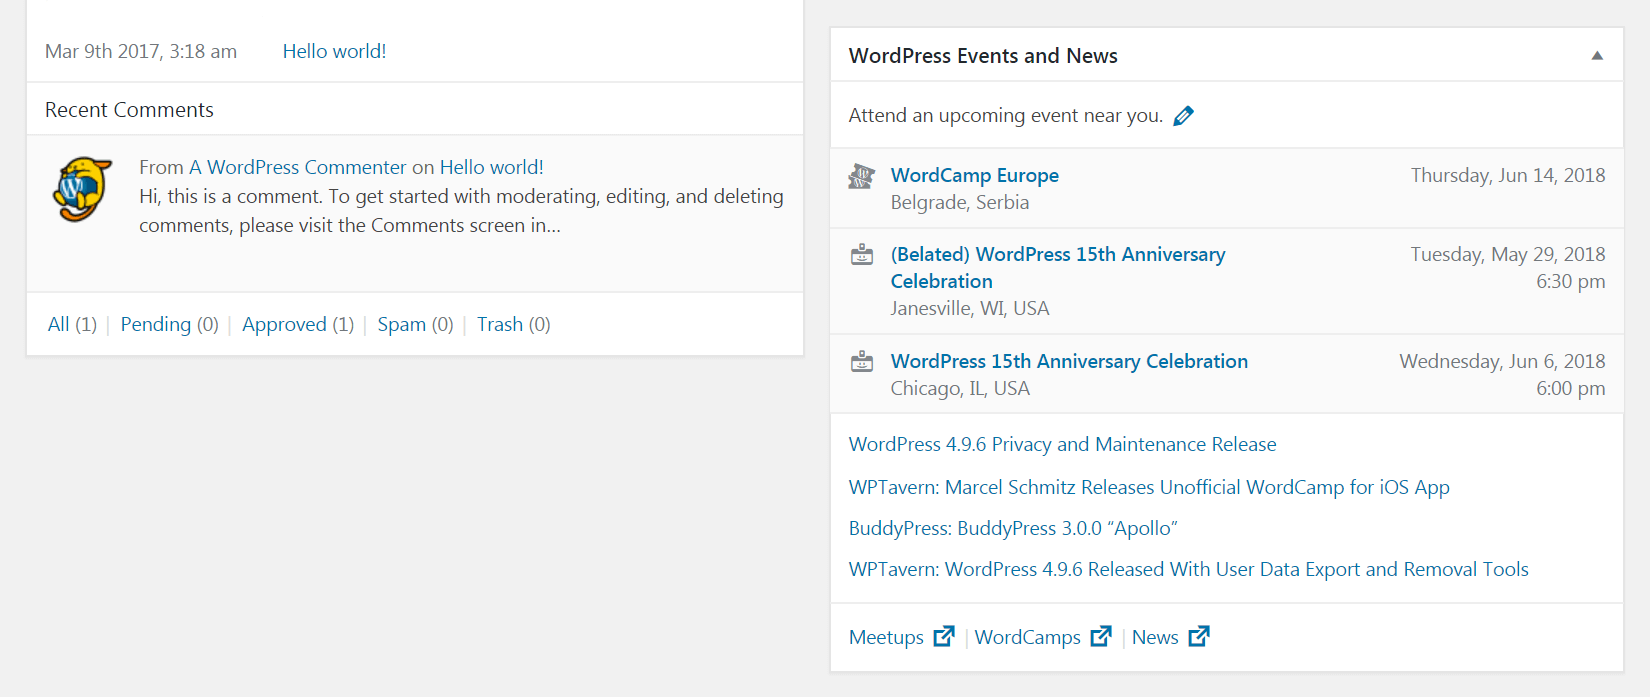 The WordPress Events and News widget.